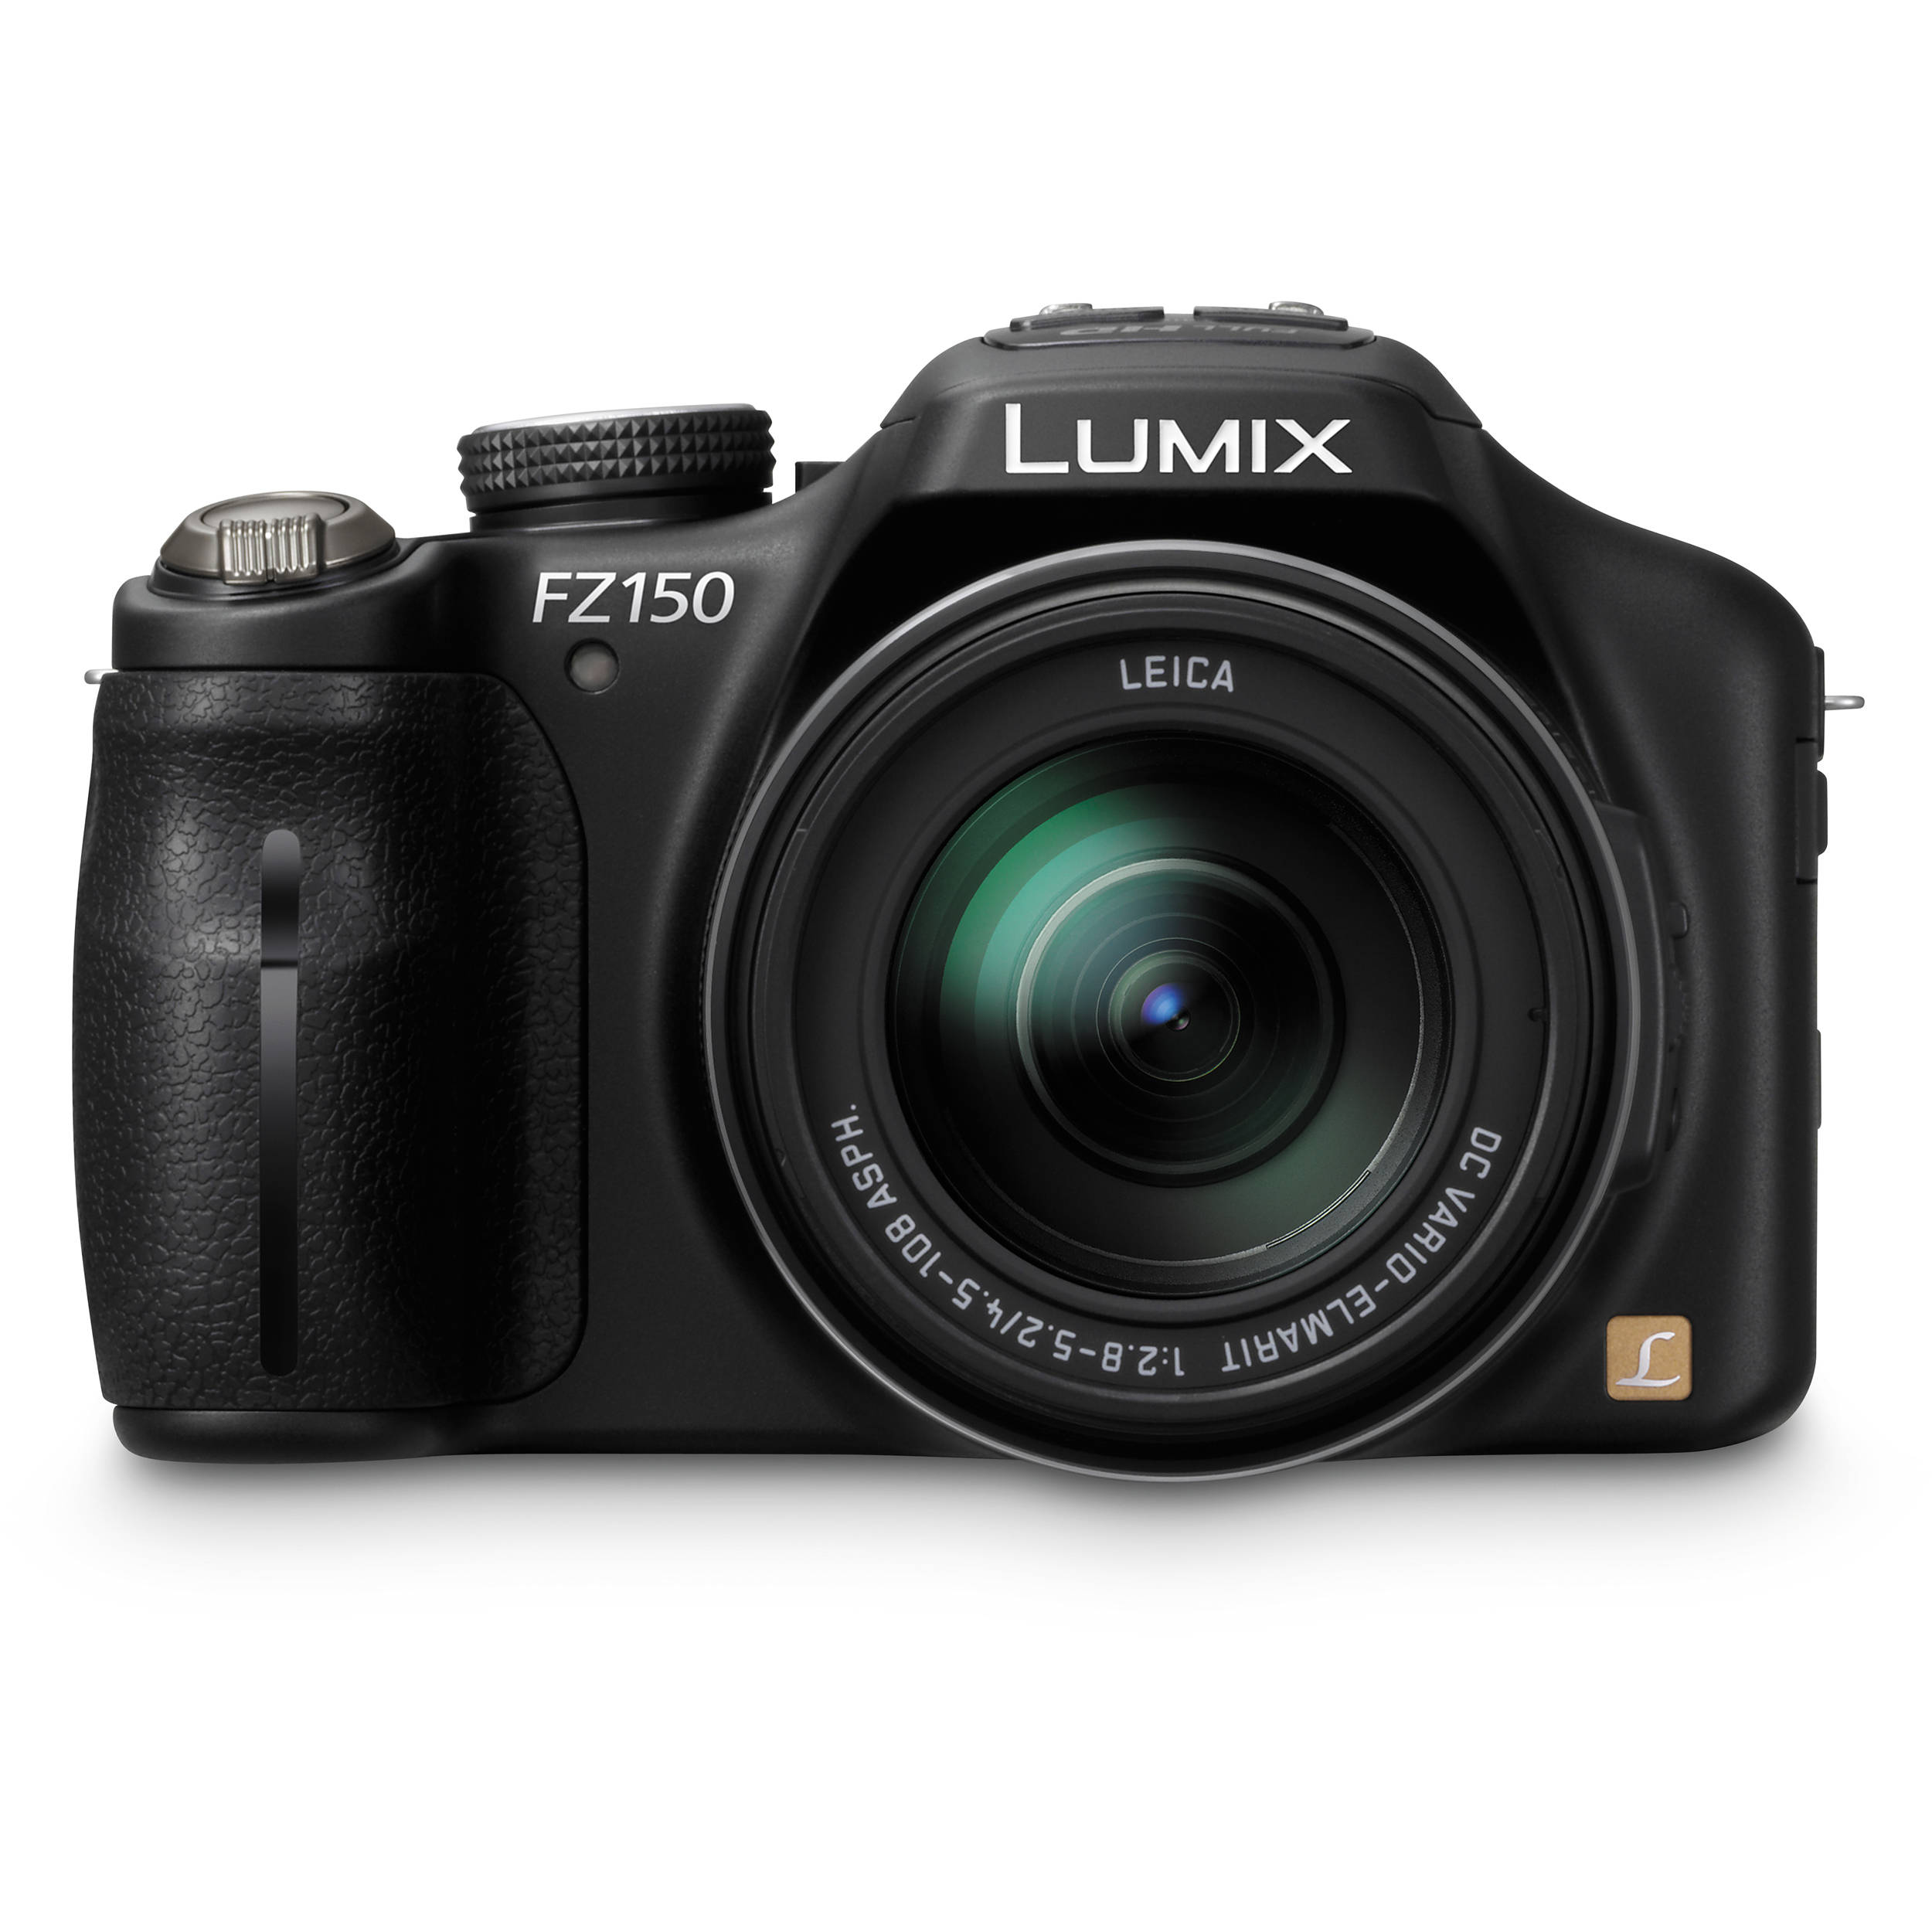 panasonic lumix dmc zs5 digital camera review